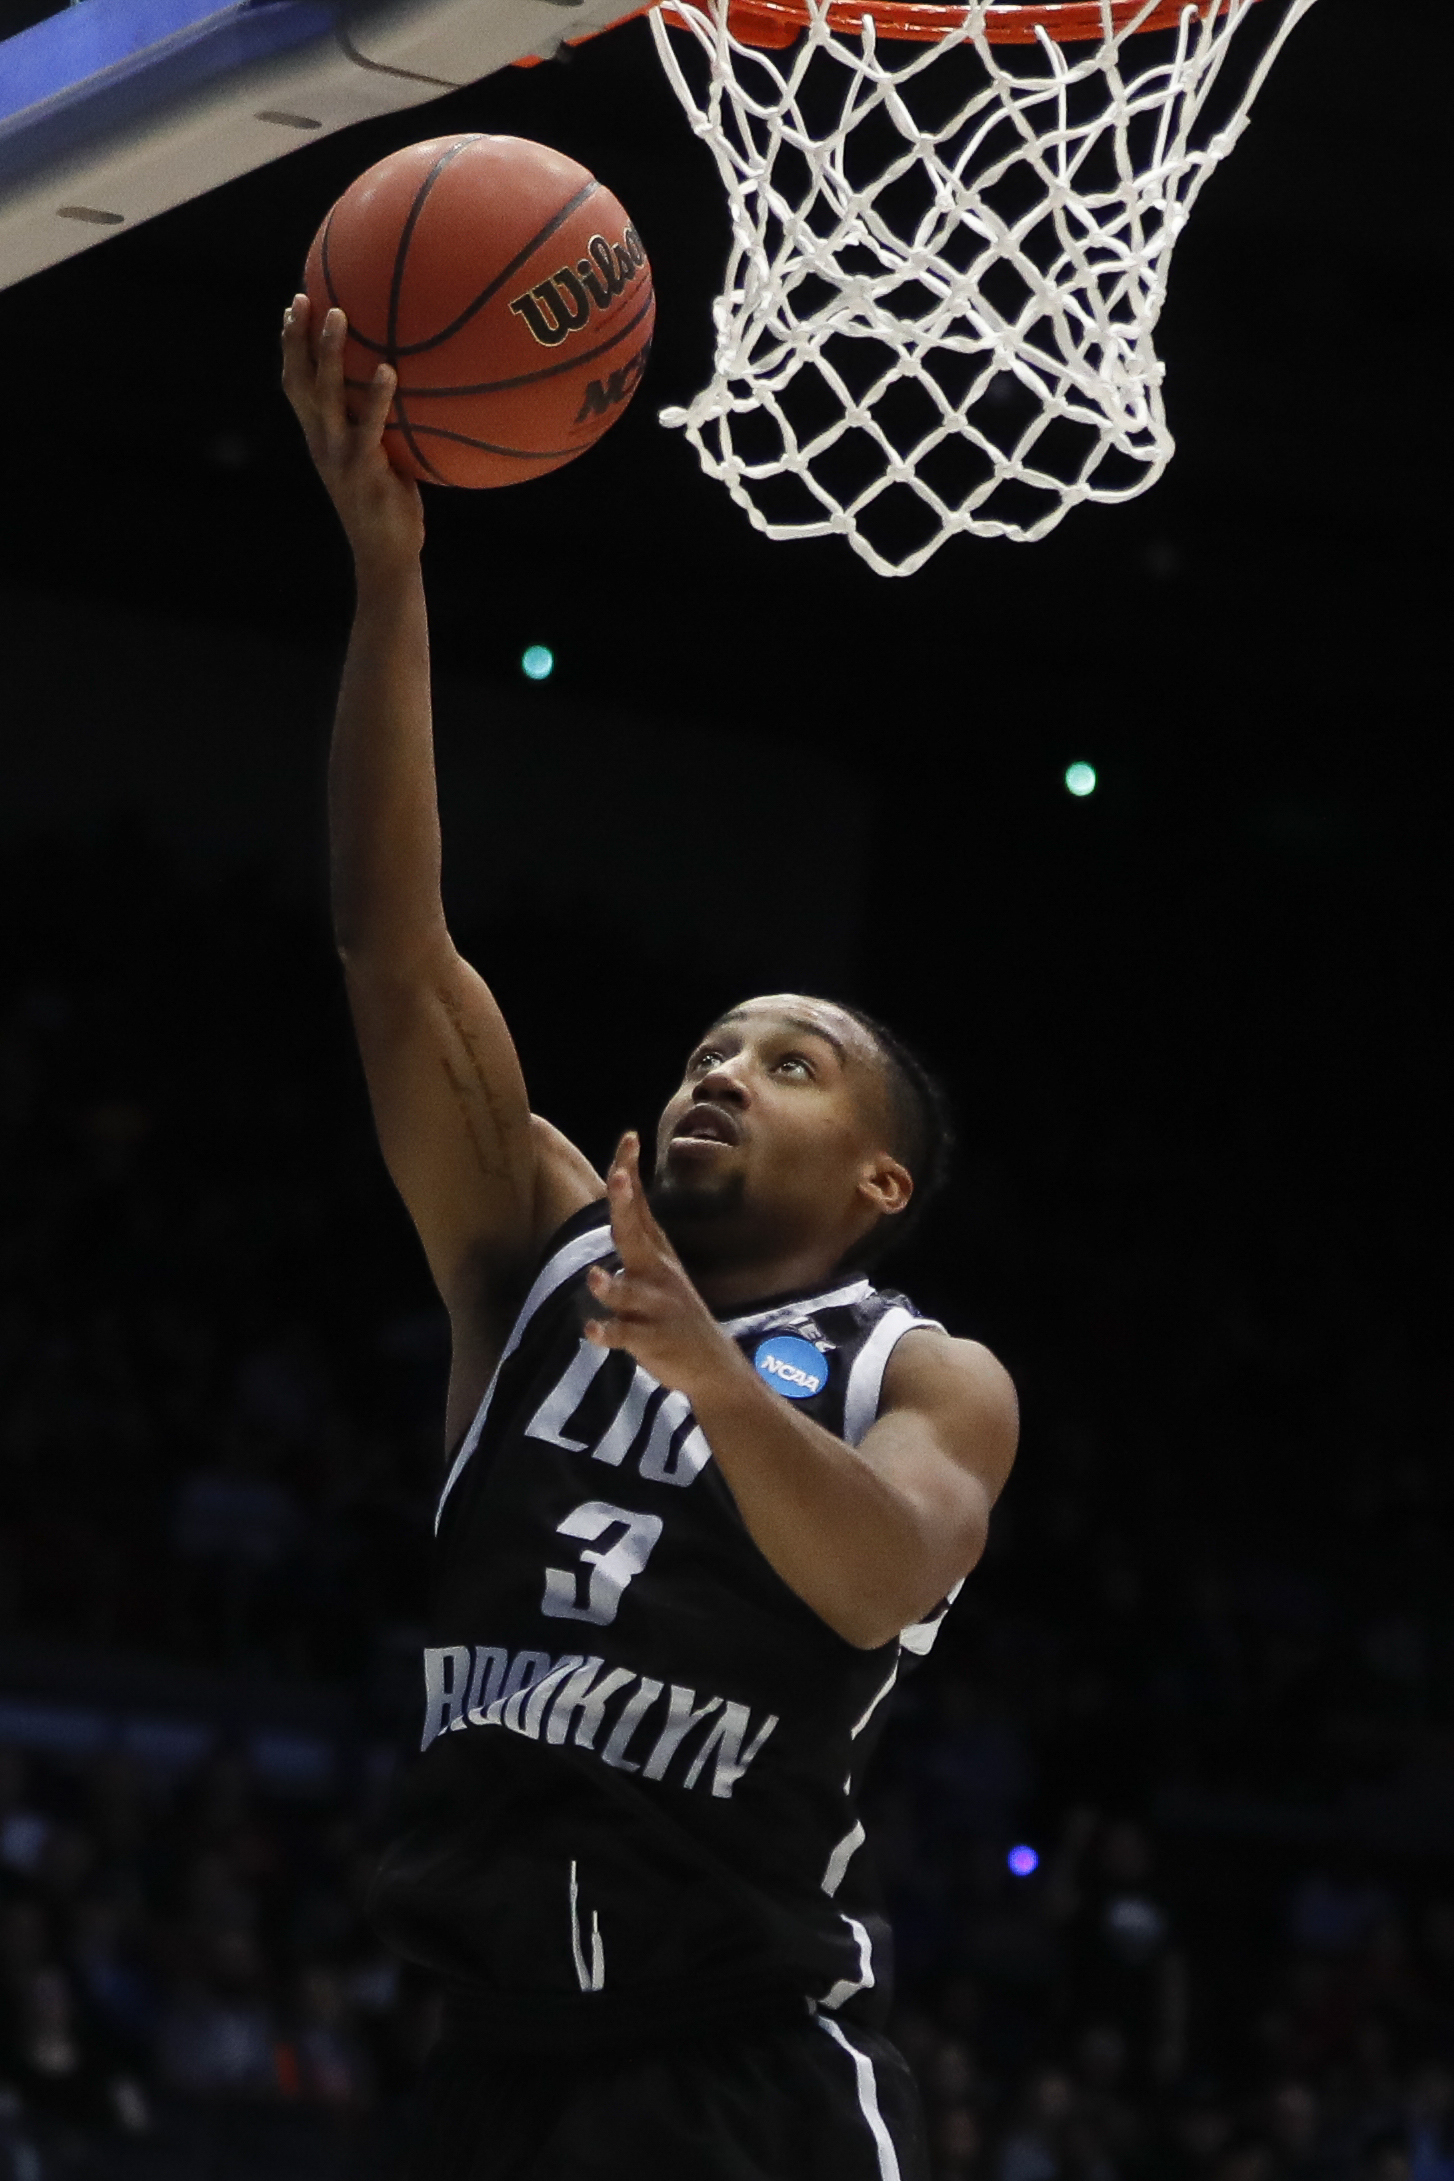 LIU Brooklyn's Jashaun Agosto shoots during the first half of a First Four game of the NCAA men's college basketball tournament against Radford, Tuesday, March 13, 2018, in Dayton, Ohio. (AP Photo/John Minchillo)